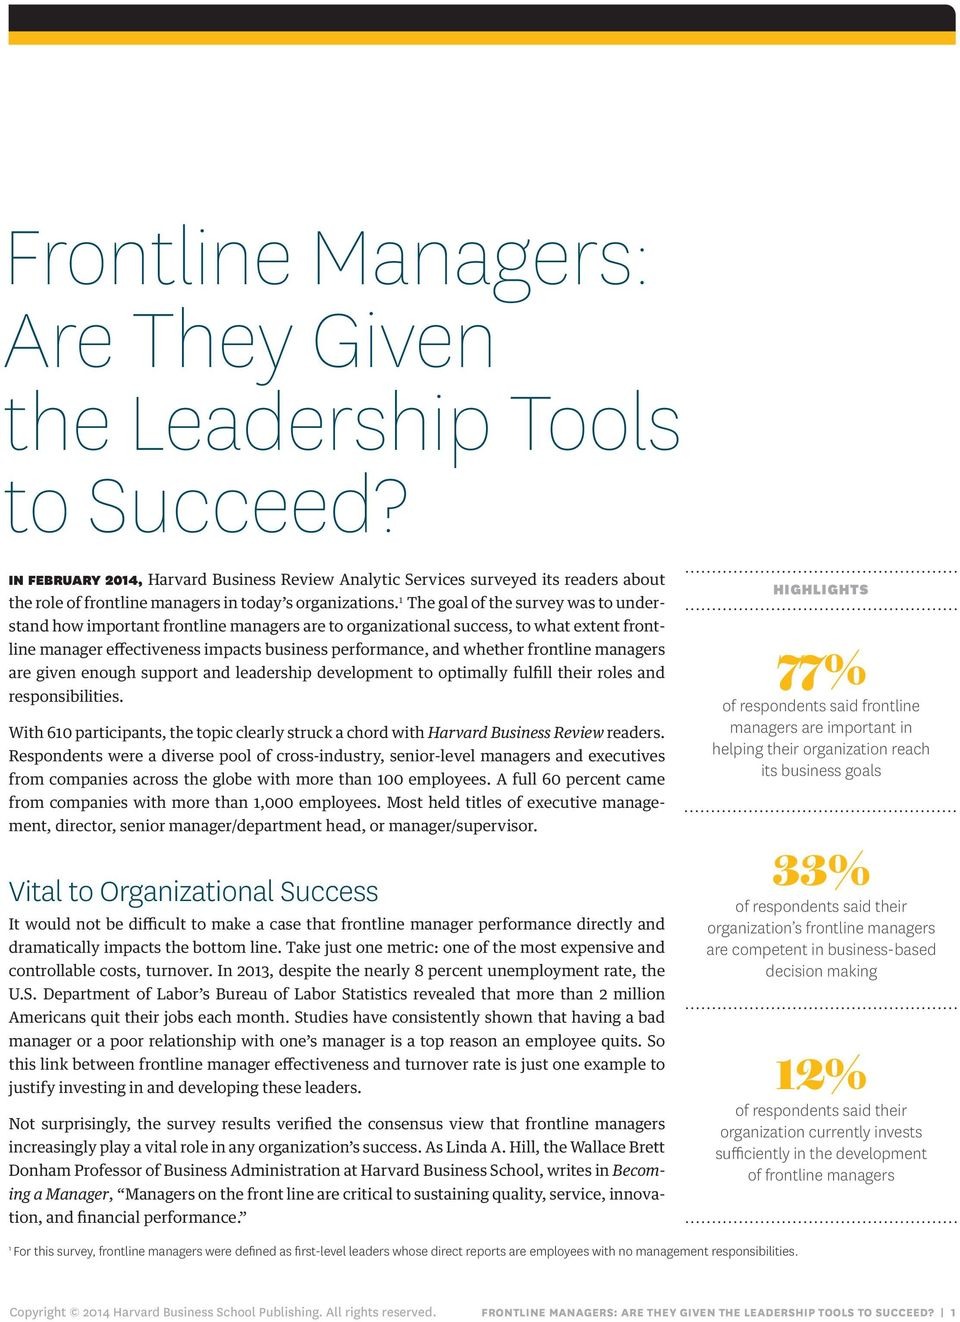 1 The goal of the survey was to understand how important frontline managers are to organizational success, to what extent frontline manager effectiveness impacts business performance, and whether